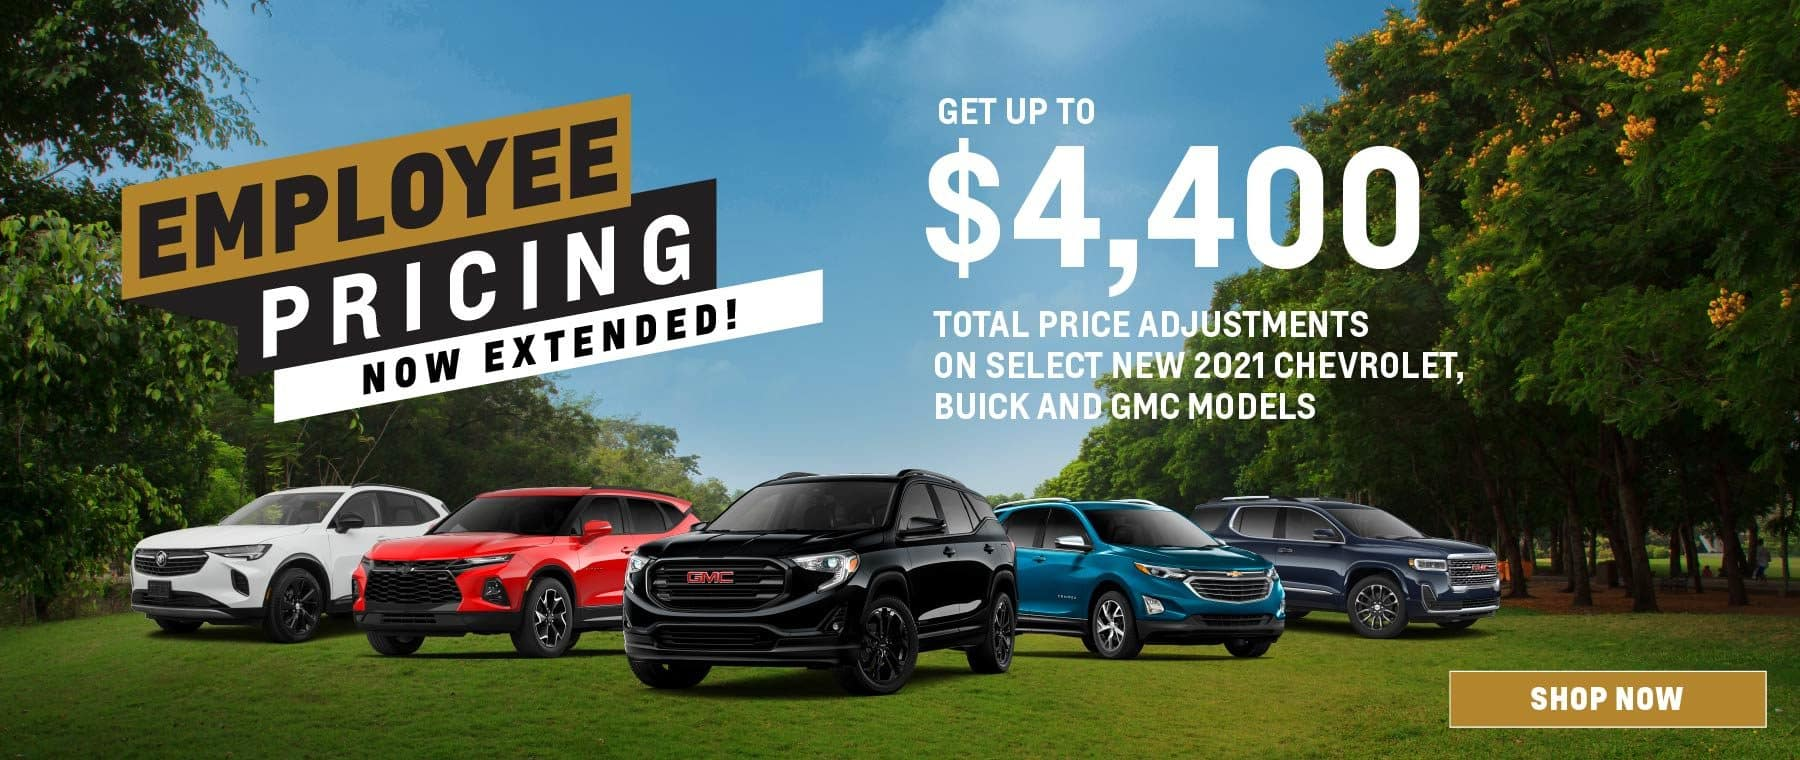 Employee Pricing Now Extended – Roy Foss Thornhill – Dealerinspire Banner 1800×760